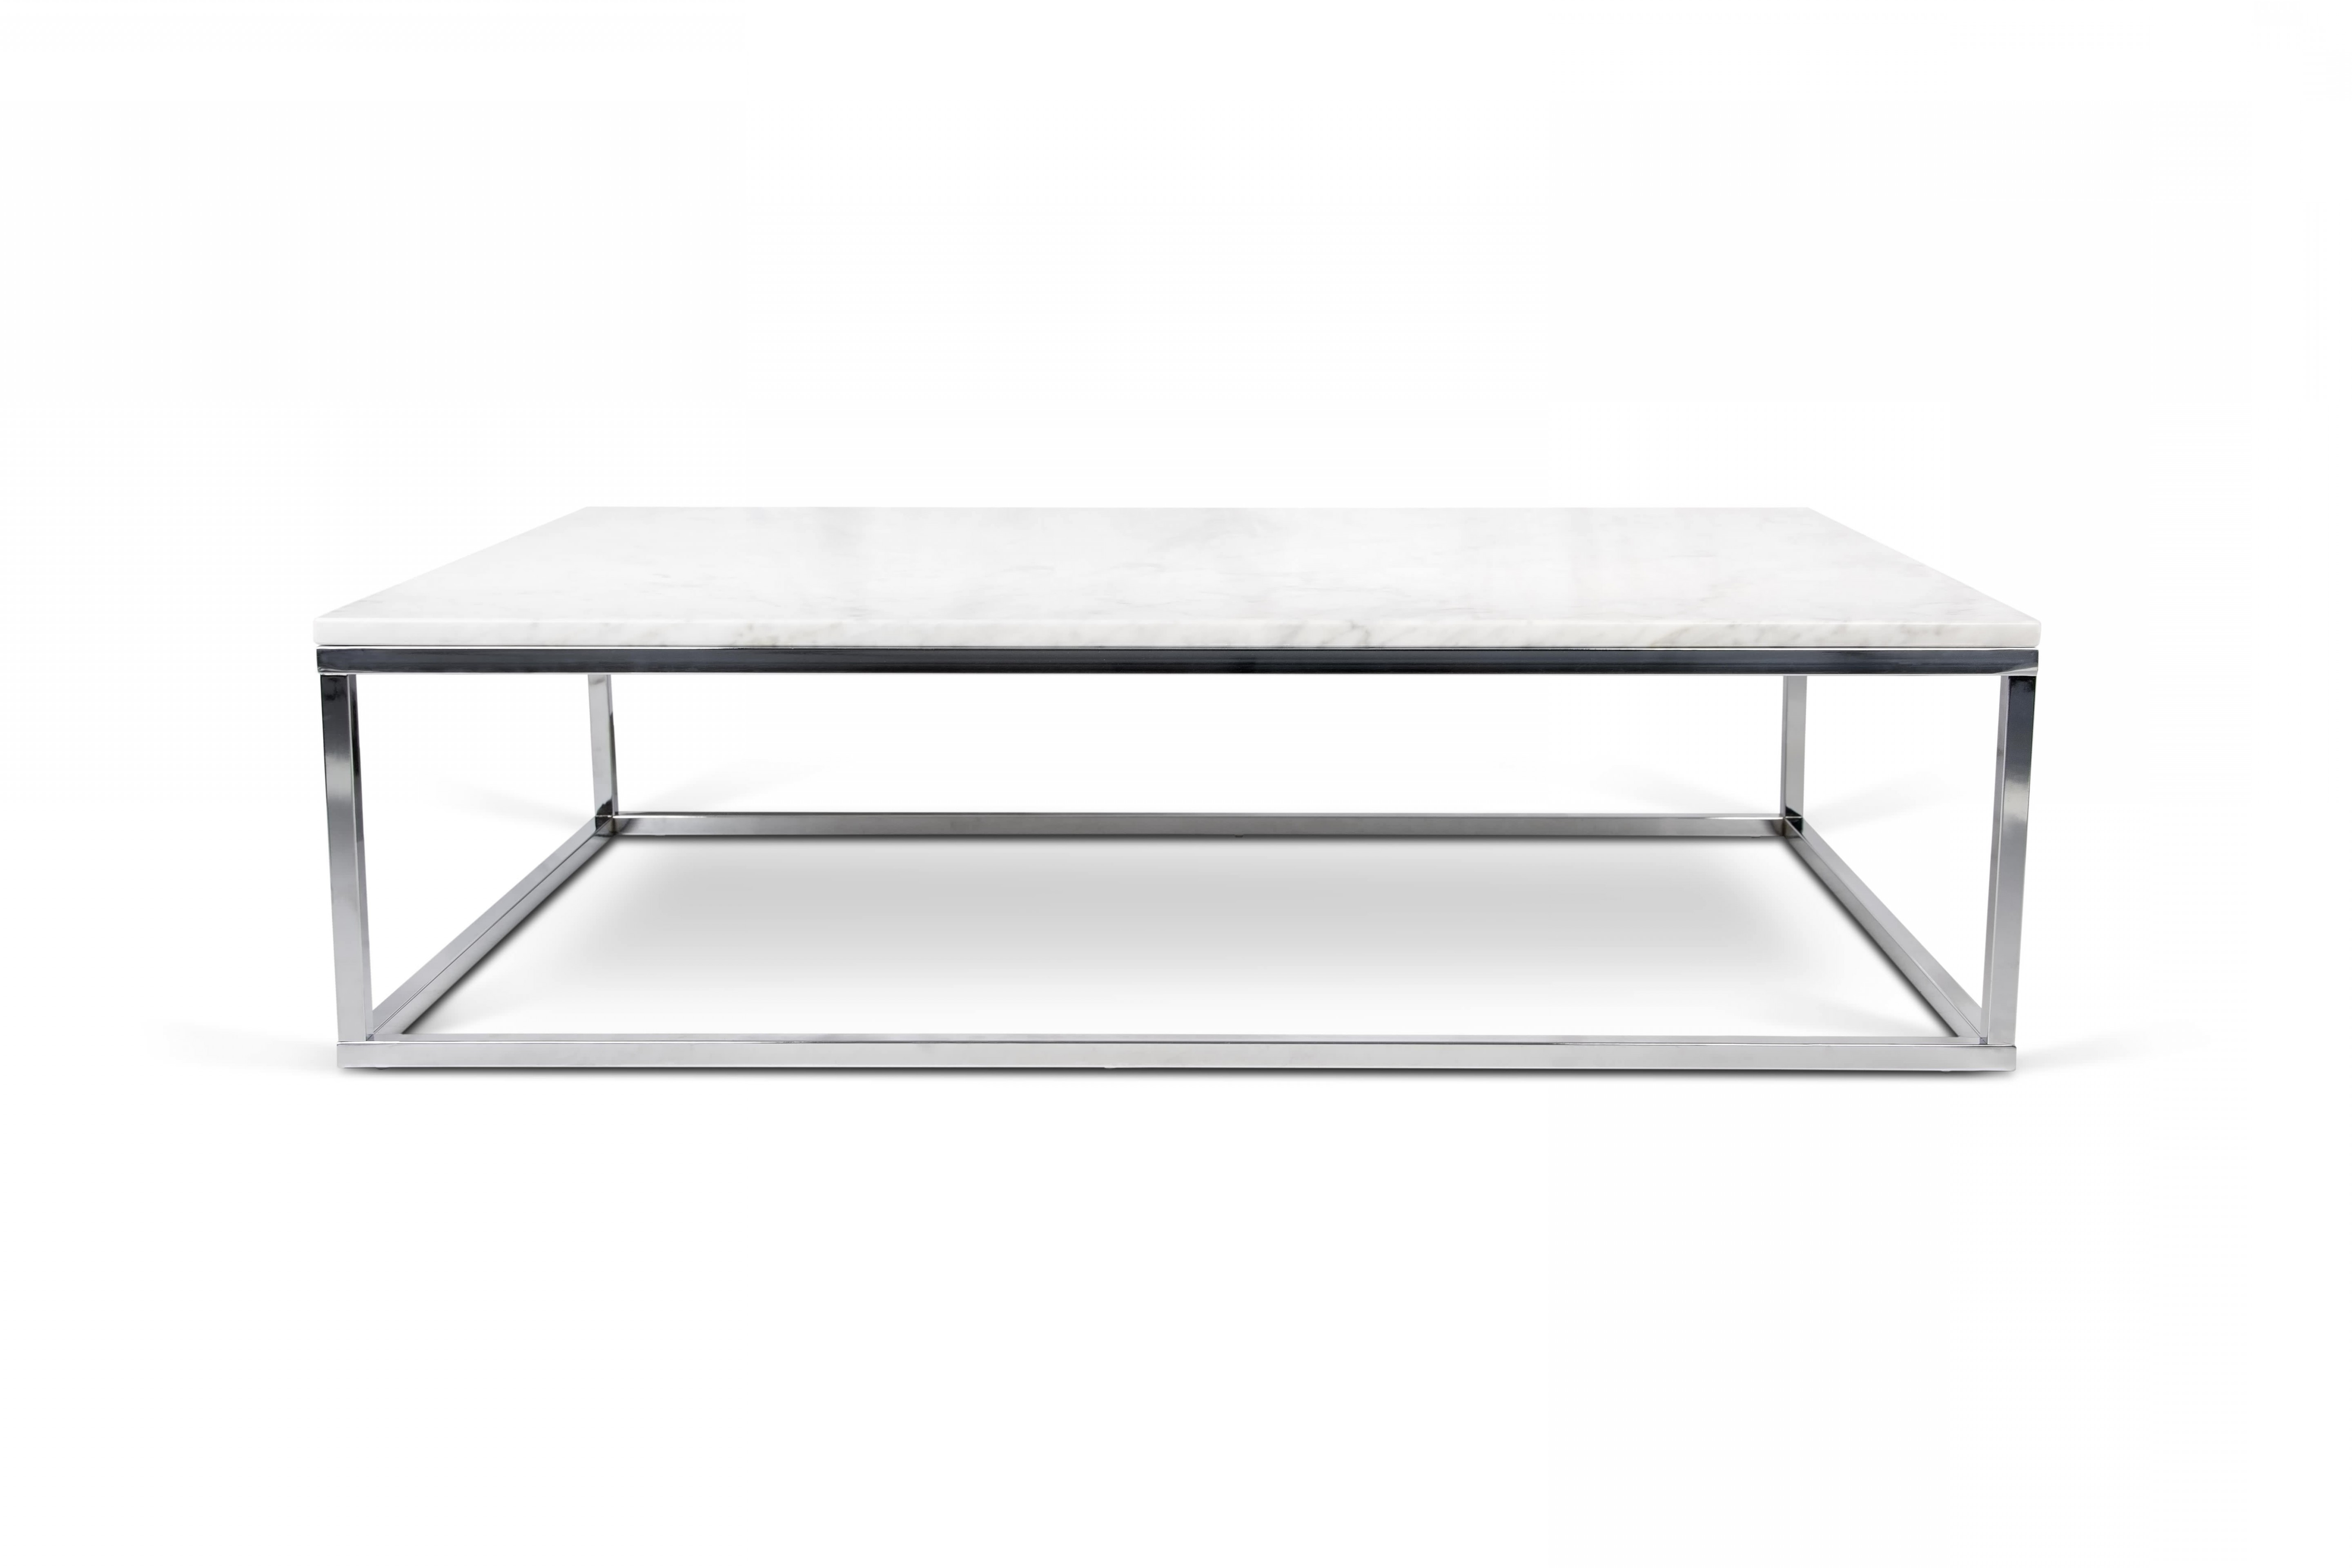 Marble Coffee Table Australia Luxury Great Modern Marble Coffee Regarding Latest Modern Marble Iron Coffee Tables (View 10 of 20)